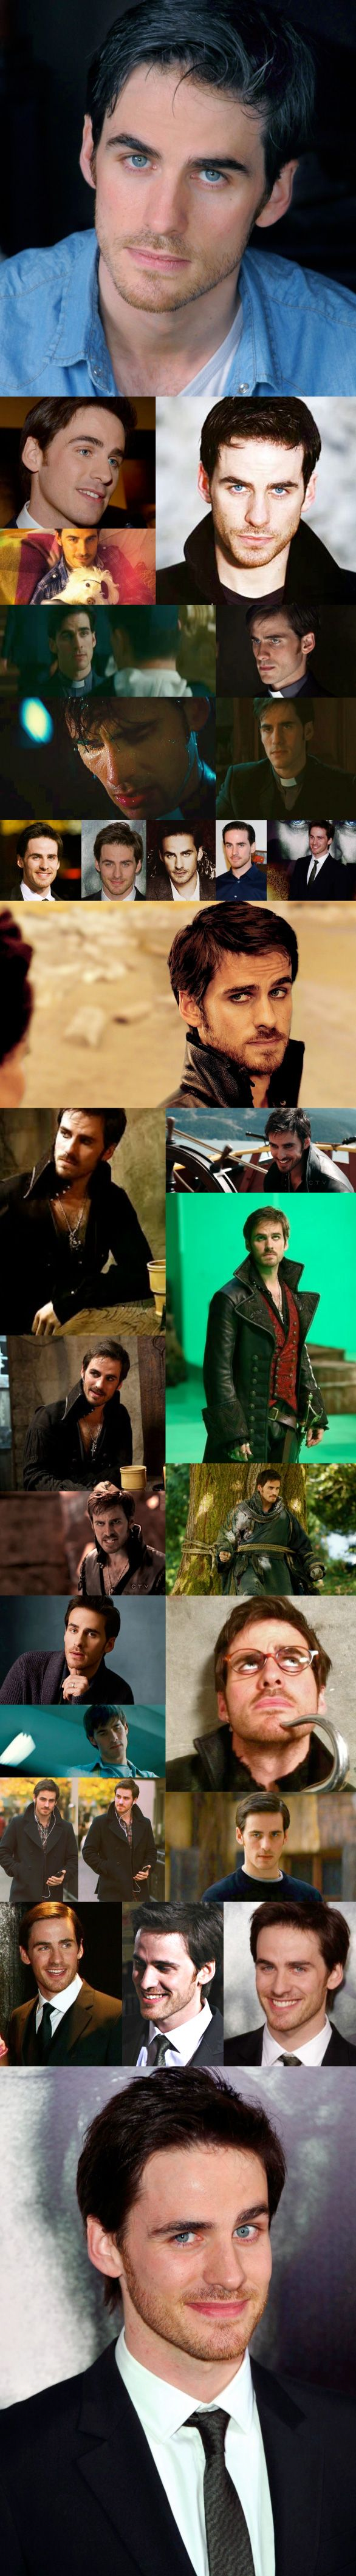 Colin O'Donoghue *melts* He's one of the only guys I've ever seen look good pulling off the guy-liner